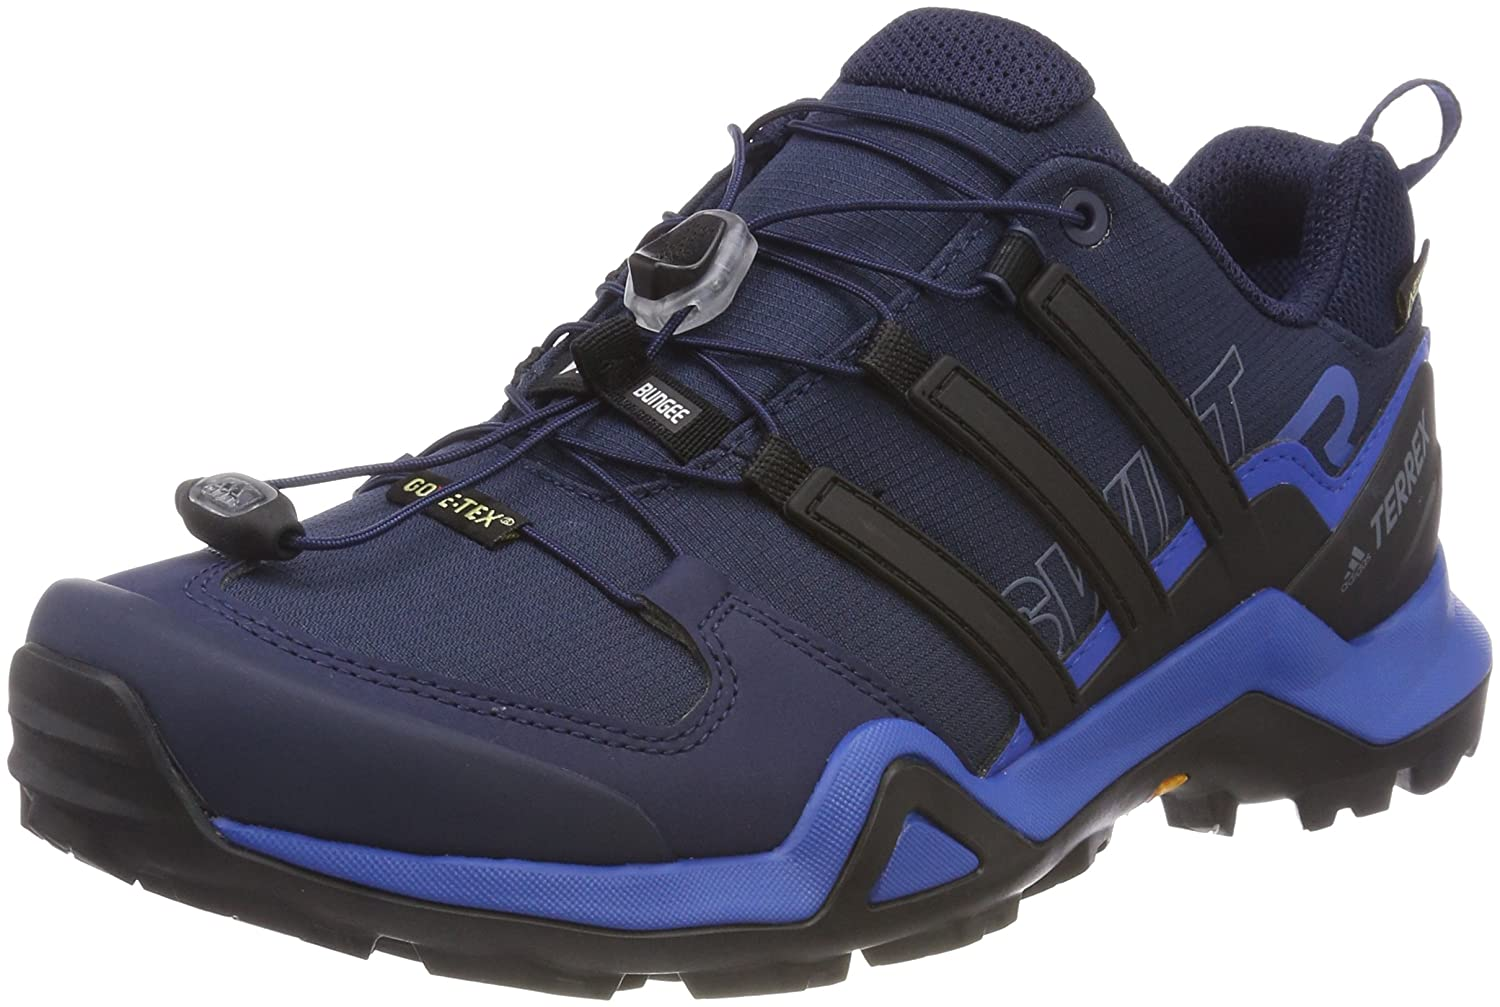 Adidas Terrex Swift R2 GTX, Zapatillas de Running para Asfalto para Hombre 44 2/3 EU|Azul (Collegiate Navy/Core Black/Blue Beauty 0)